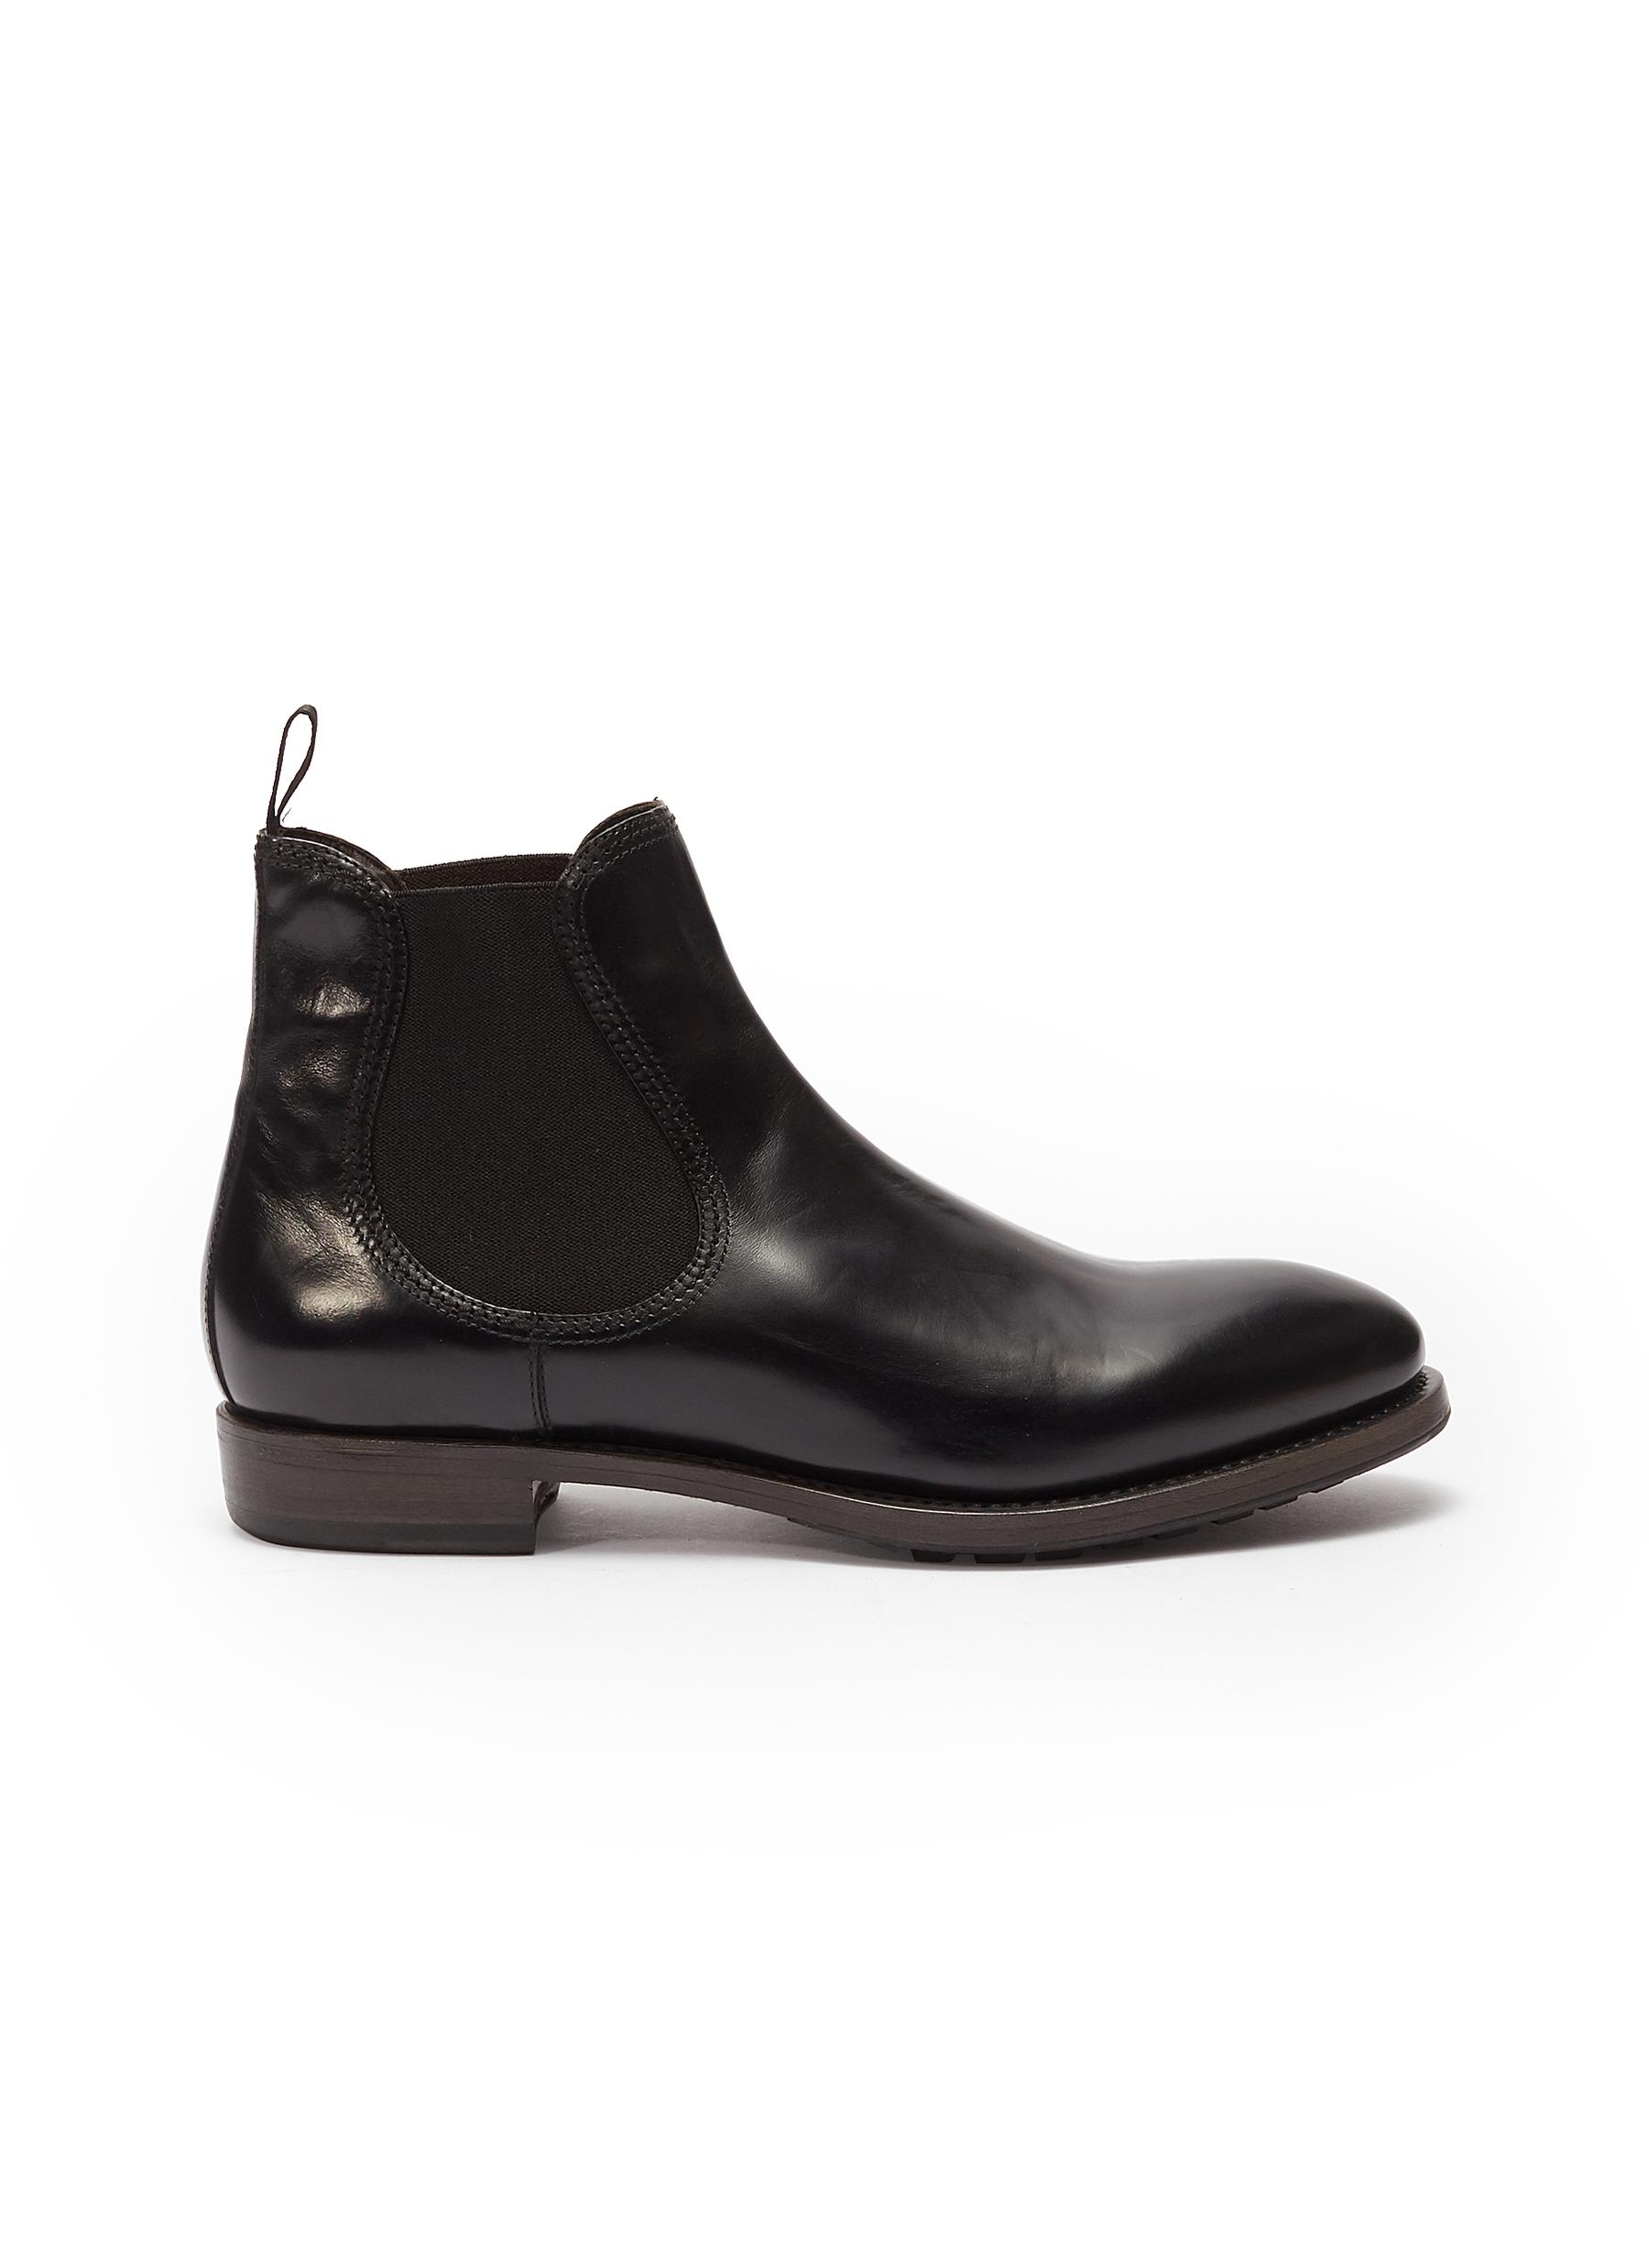 Project Twlv 'Hanoi' Leather Chelsea Boots In Black / Leather